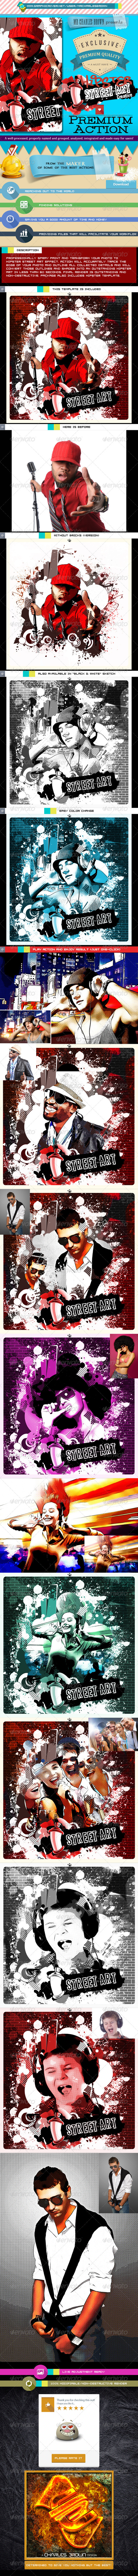 GraphicRiver Creative Hipster Street Art 6229251